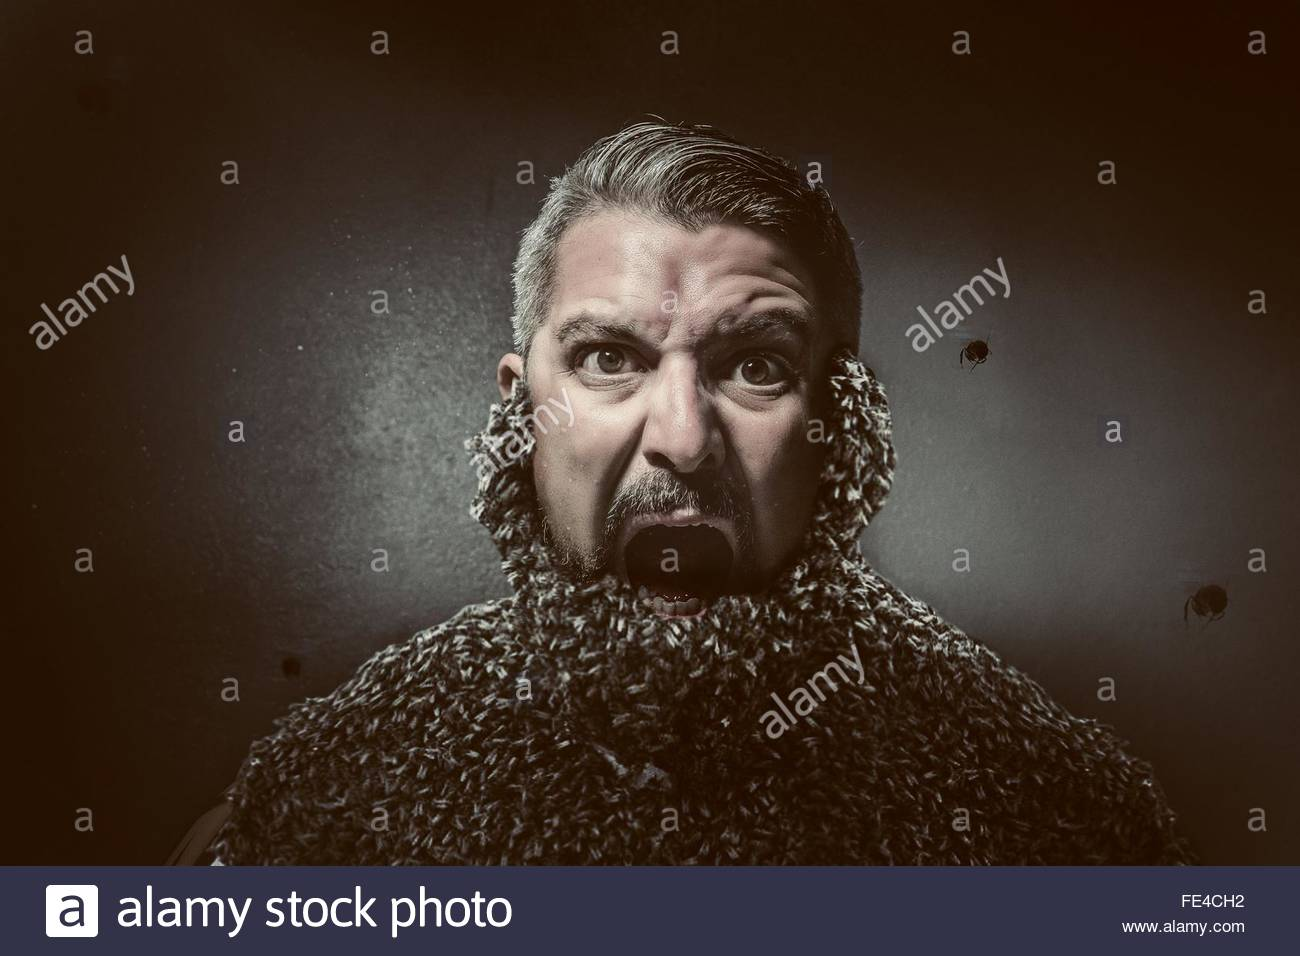 Bizarre Shot Of Man With Swarm Of Bees Covering His Face - Stock Image